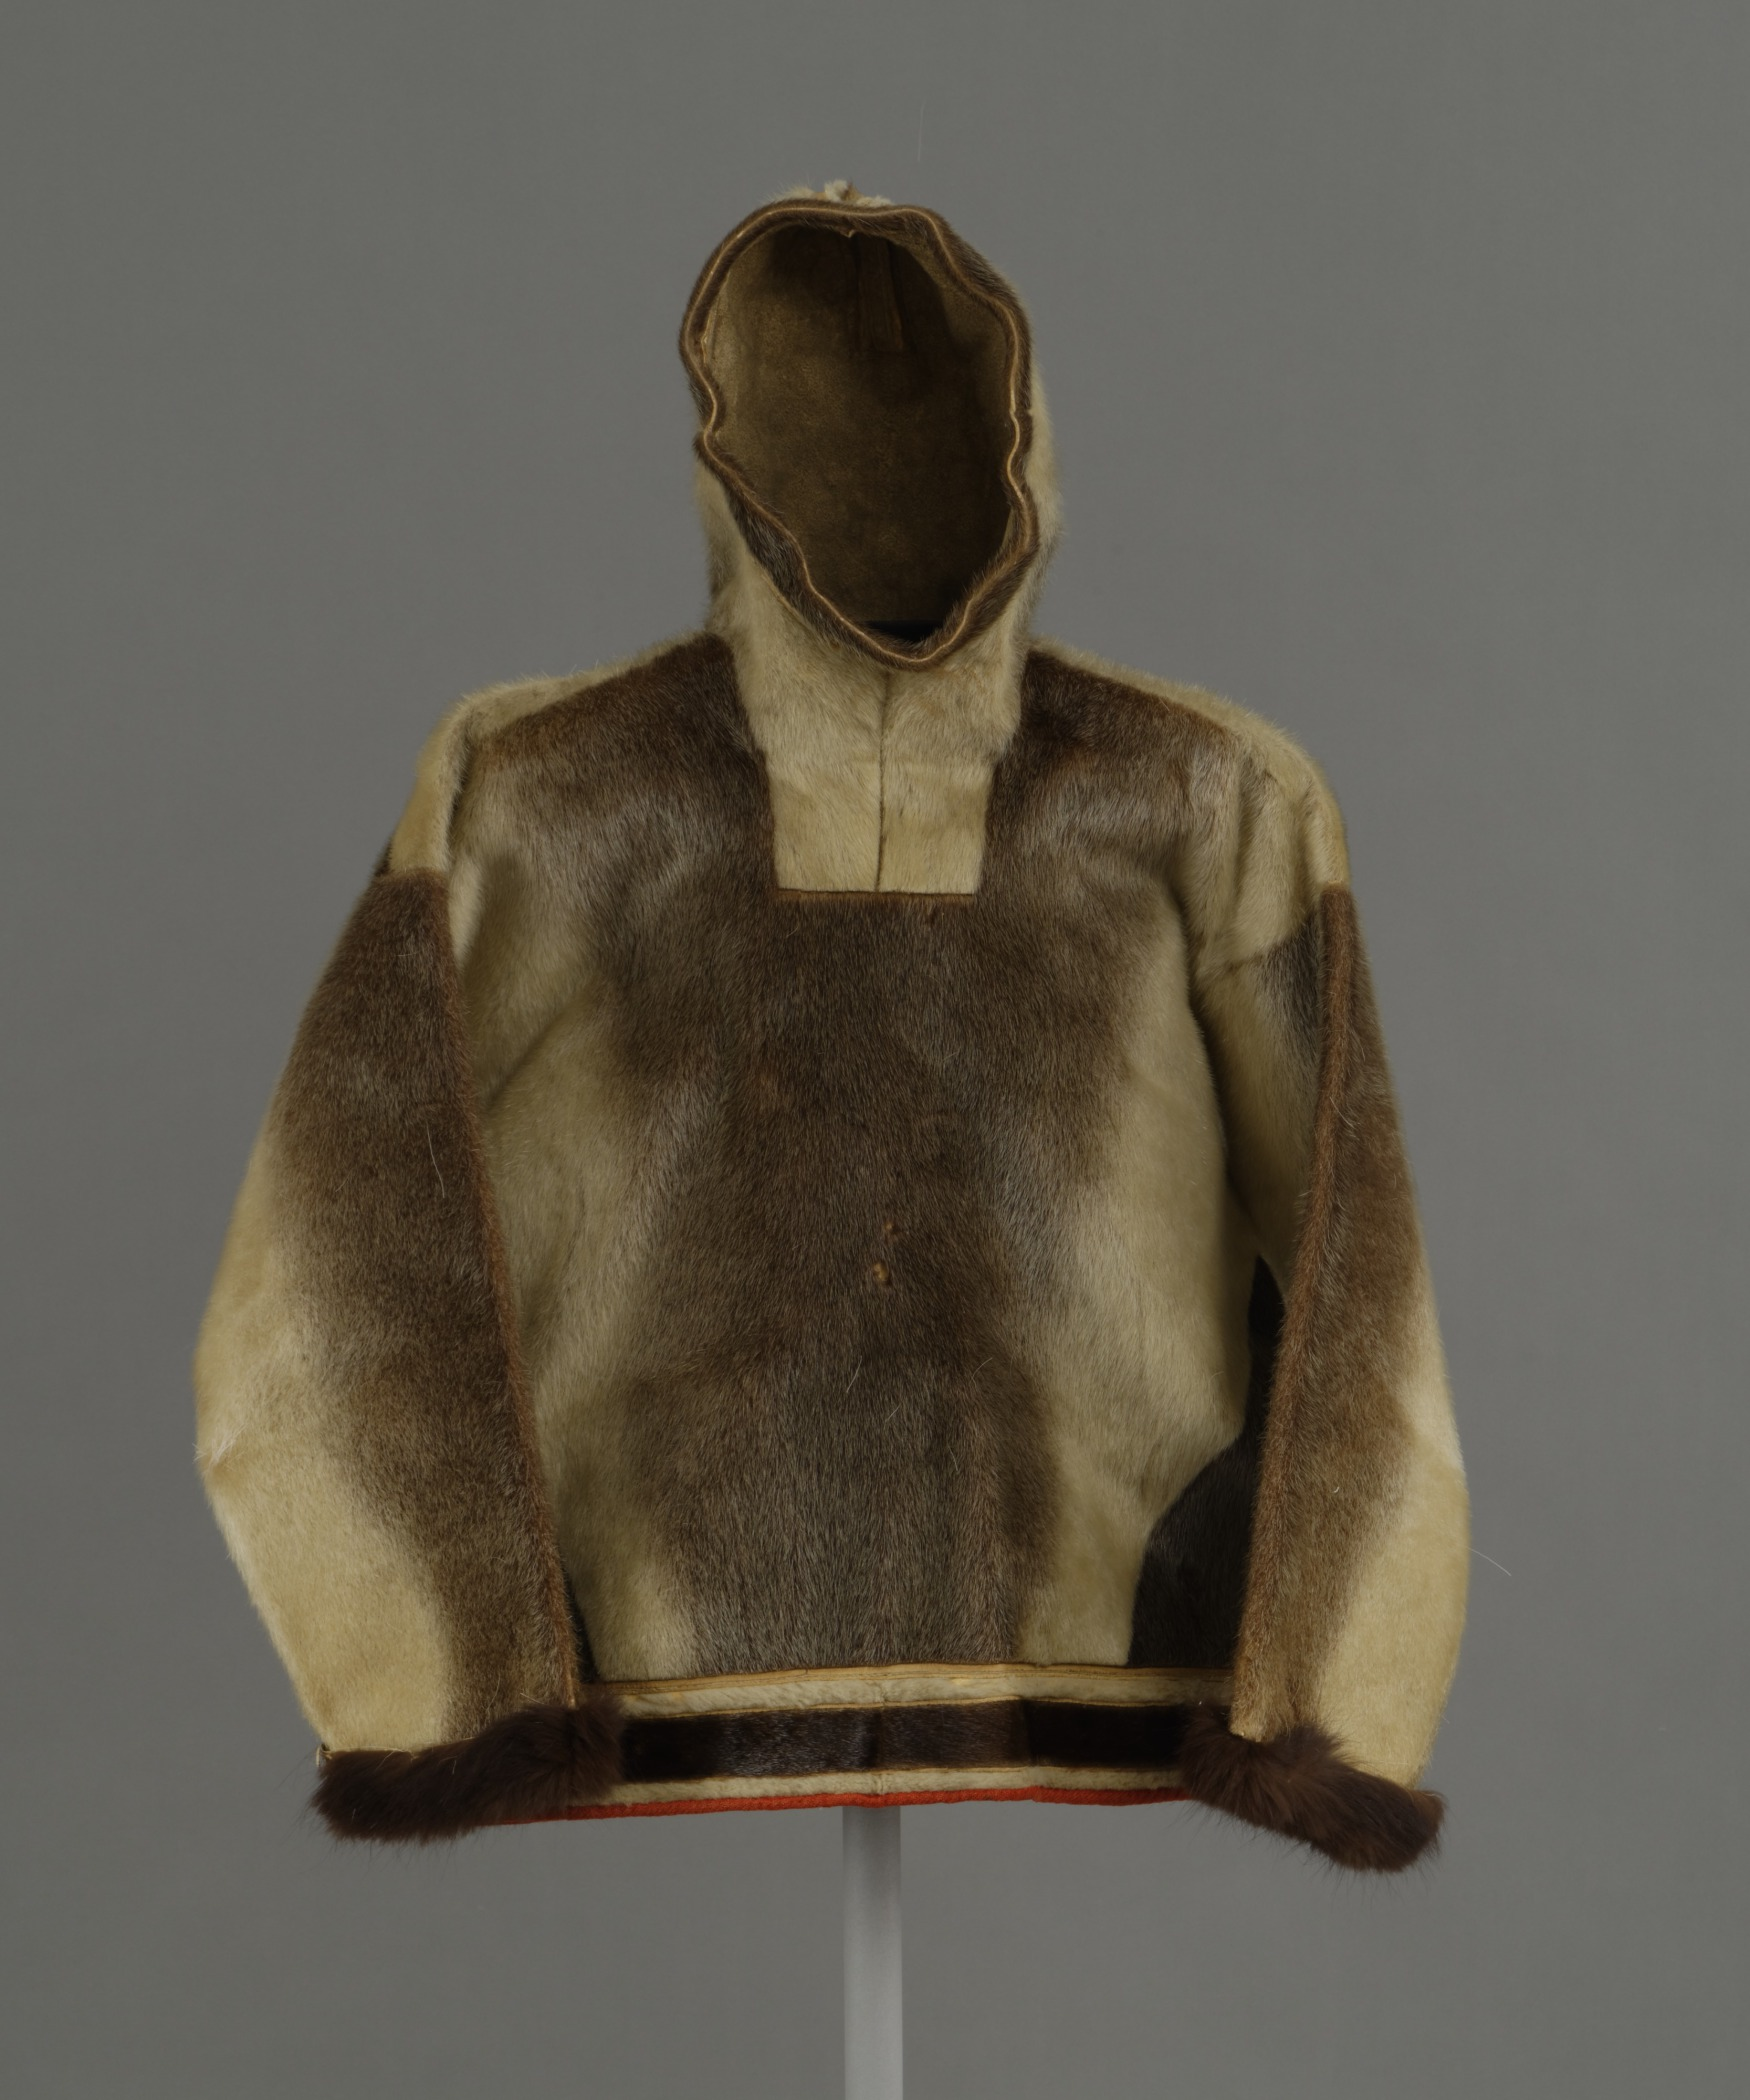 Kalaallit (West Greenlandic Inuit),men's hooded parka for spring and summer, about 1897. Sealskin, dog fur cuffs, sinew, and cloth, height: 36 1/4 in. Hood Museum of Art, Dartmouth College: Gift of Mrs. William Stickney, Class of 1900W; 164.21.15428.